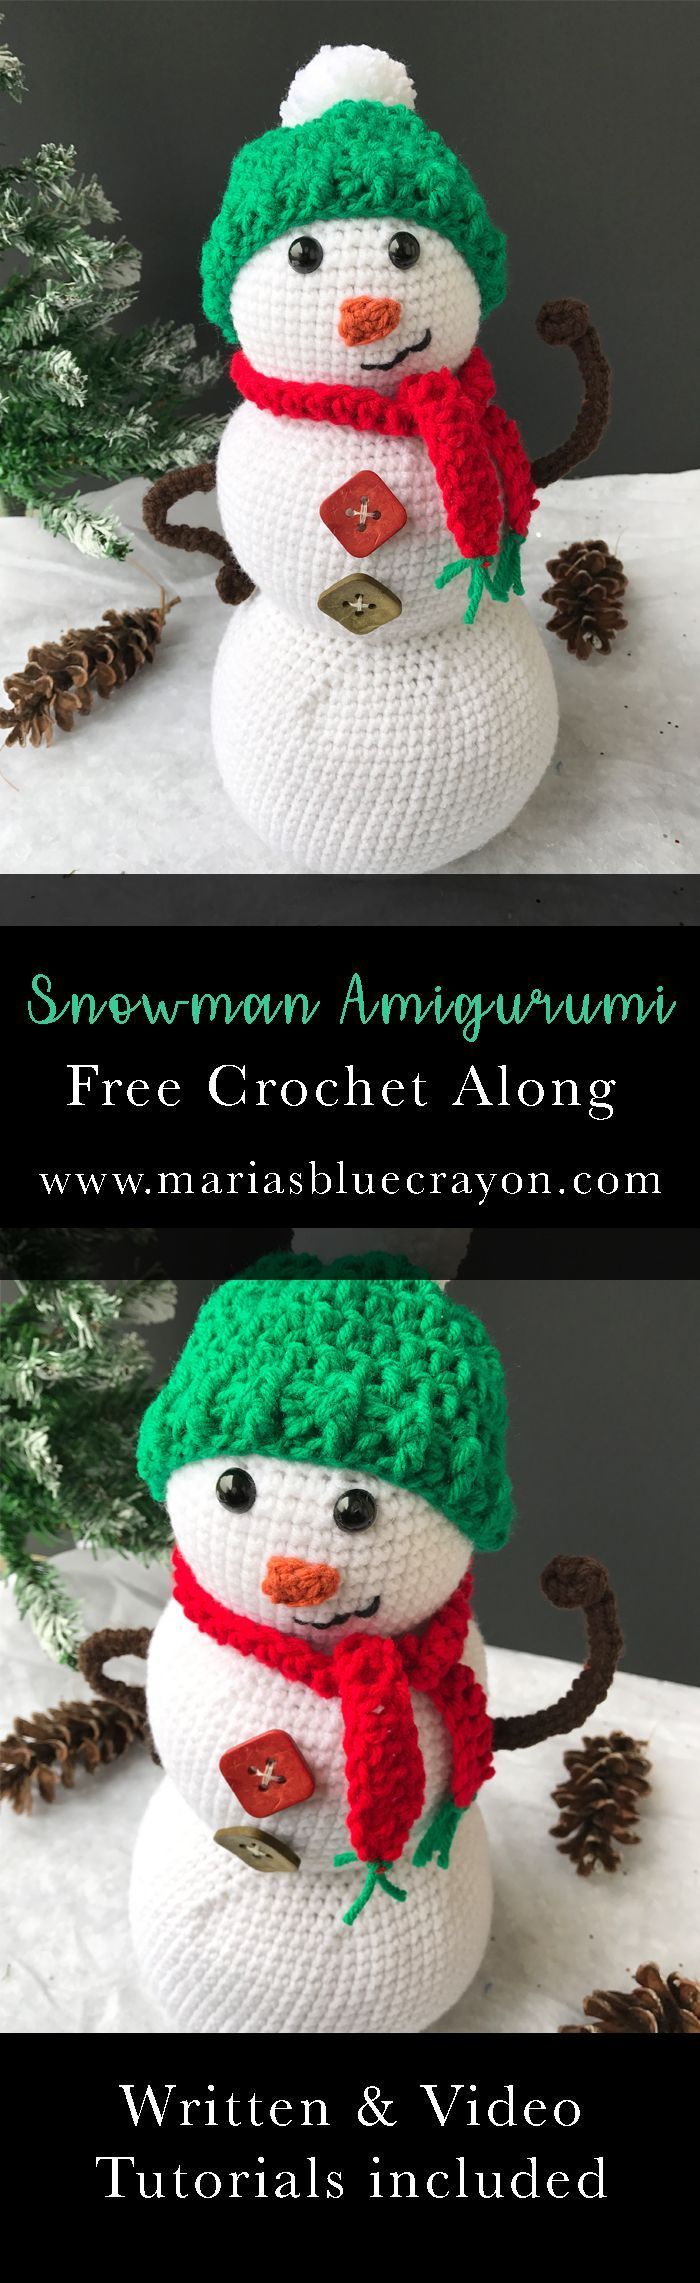 Snowman Amigurumi | Free Crochet Pattern | Free Crochet Along with Written and Video Tutorial | Crochet Christmas Home Decor | Holiday & Winter Decor | DIY